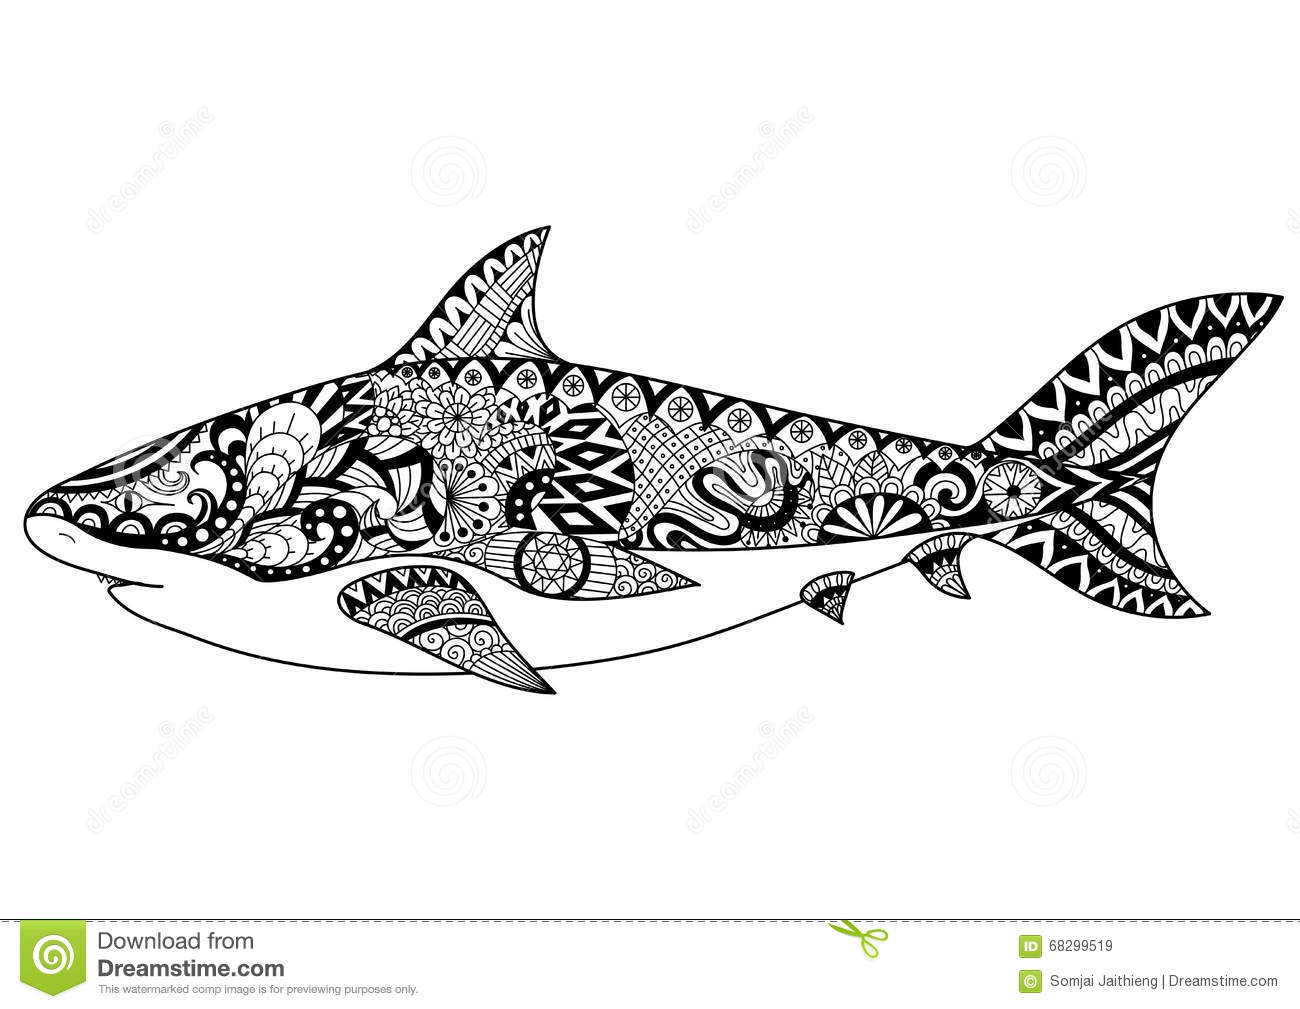 shark line art design for coloring book for tattoo t shirt